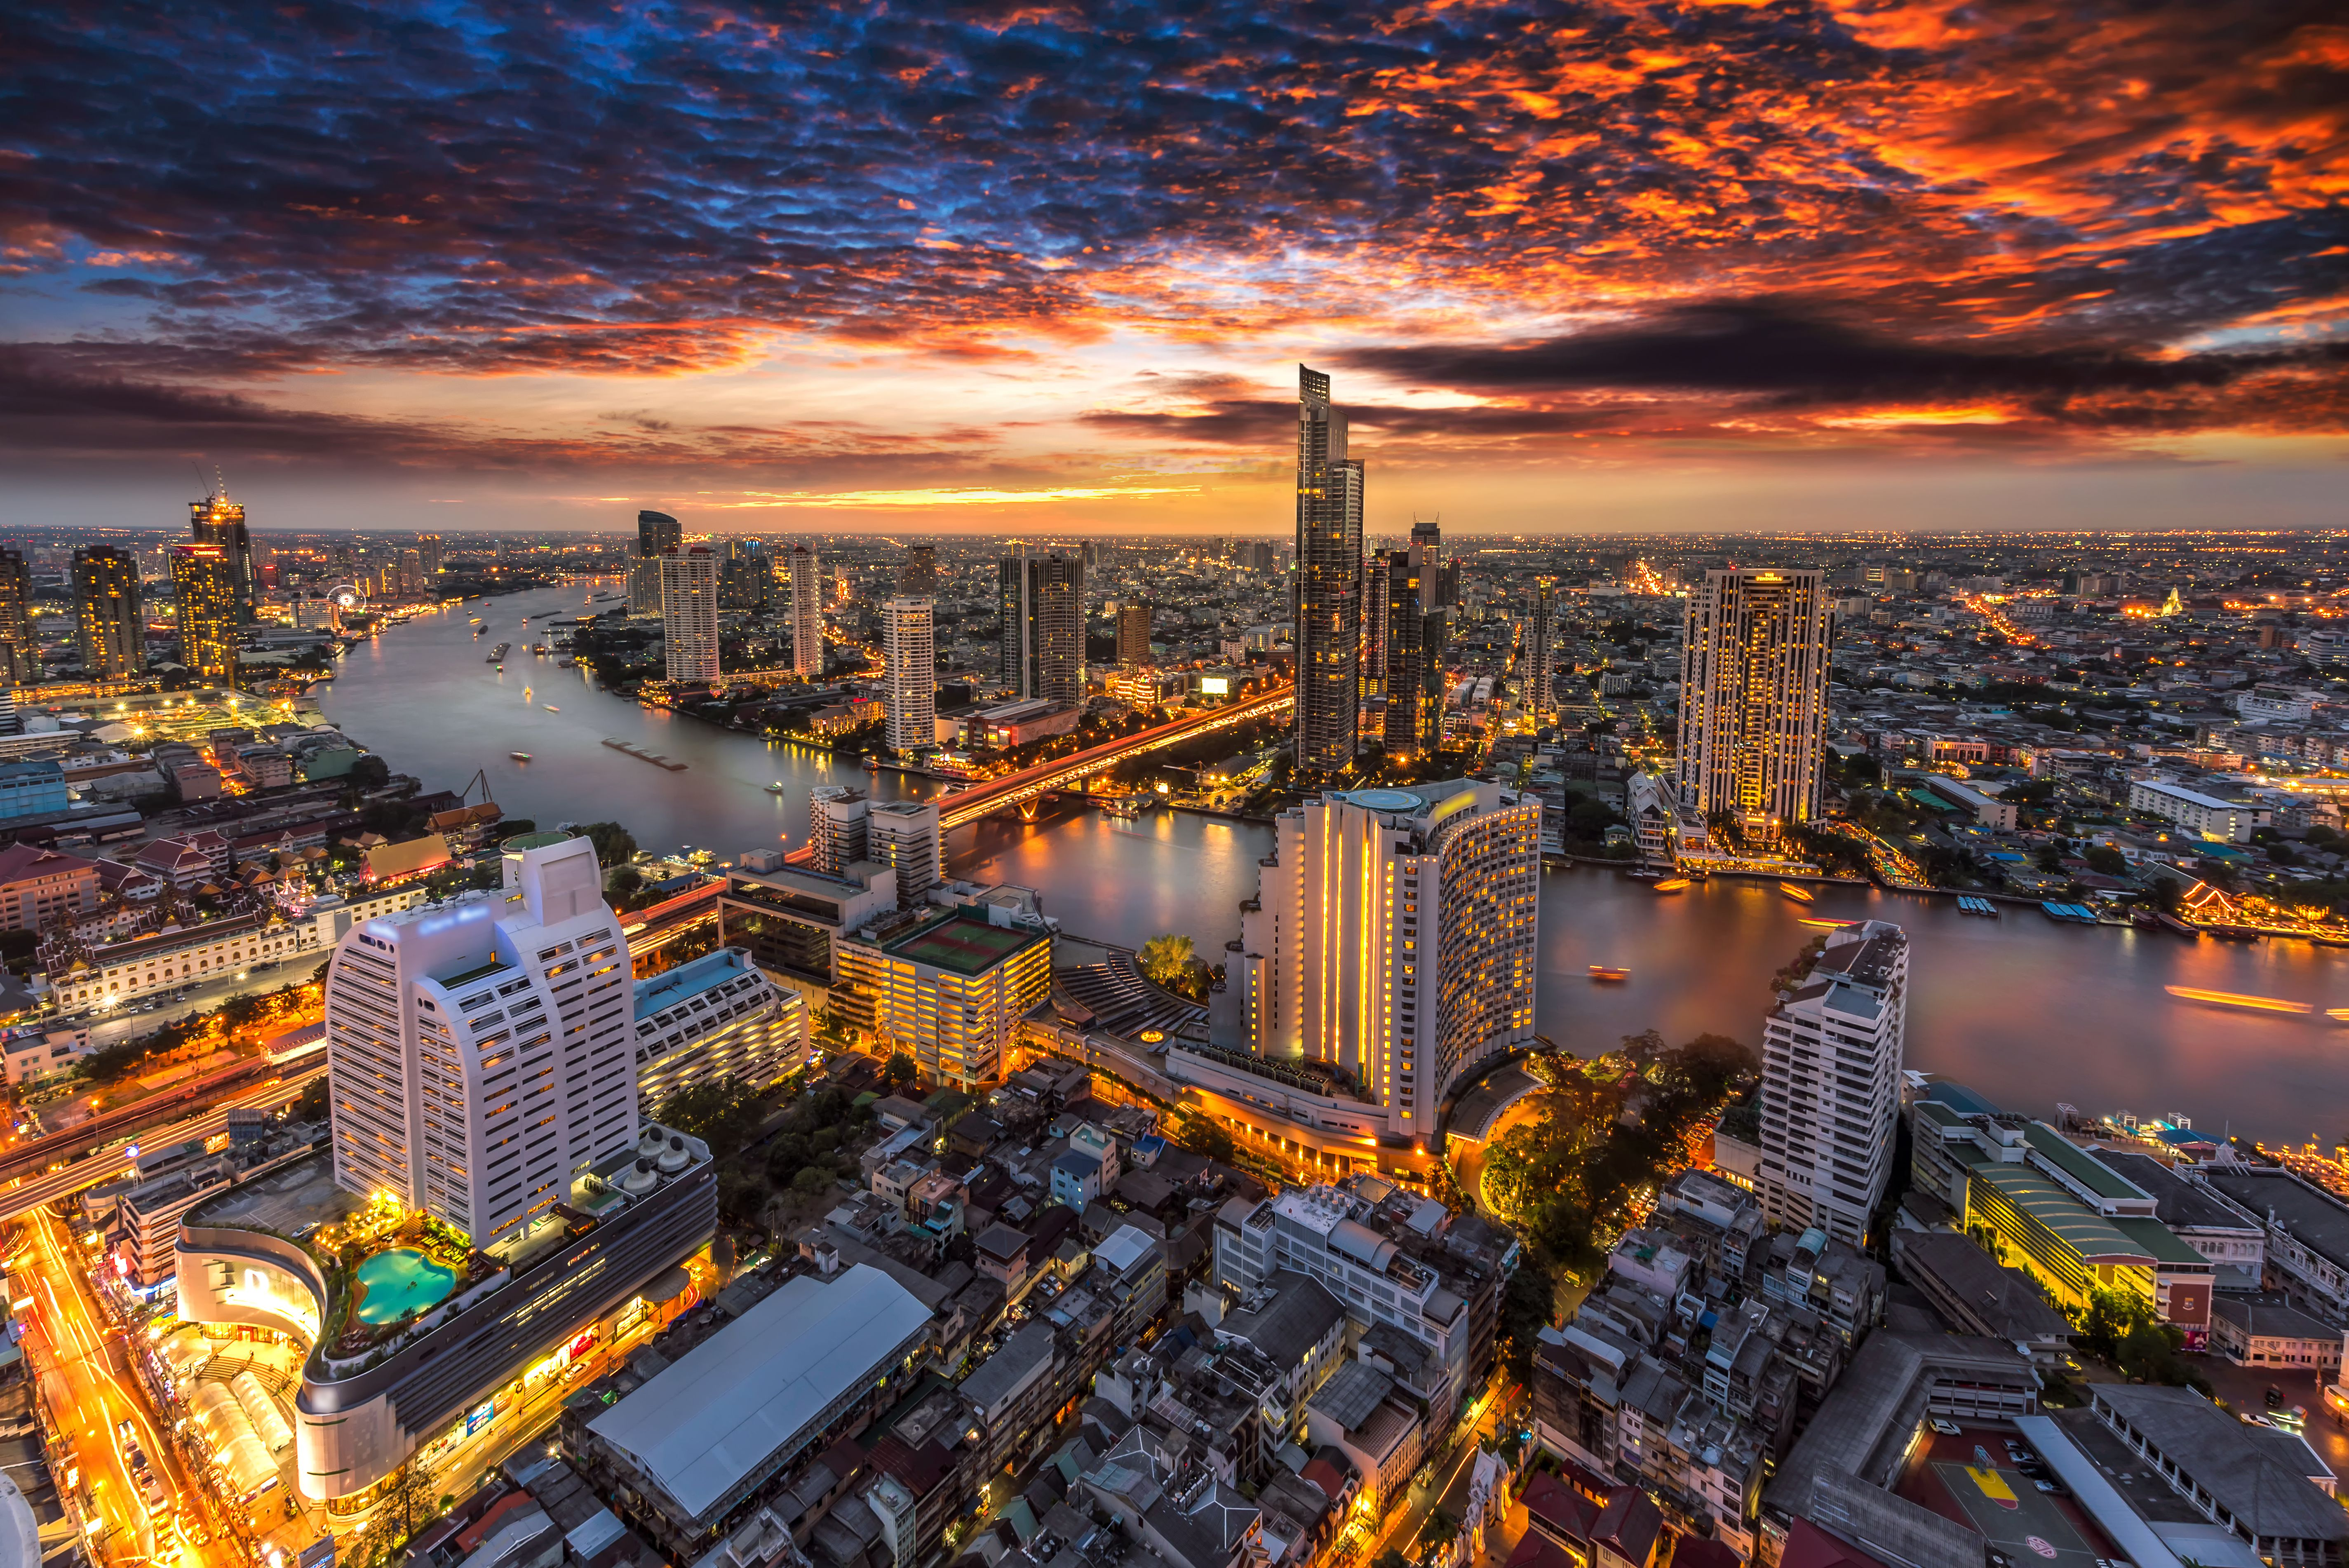 Monthly Car Insurance >> The Weather and Climate in Bangkok